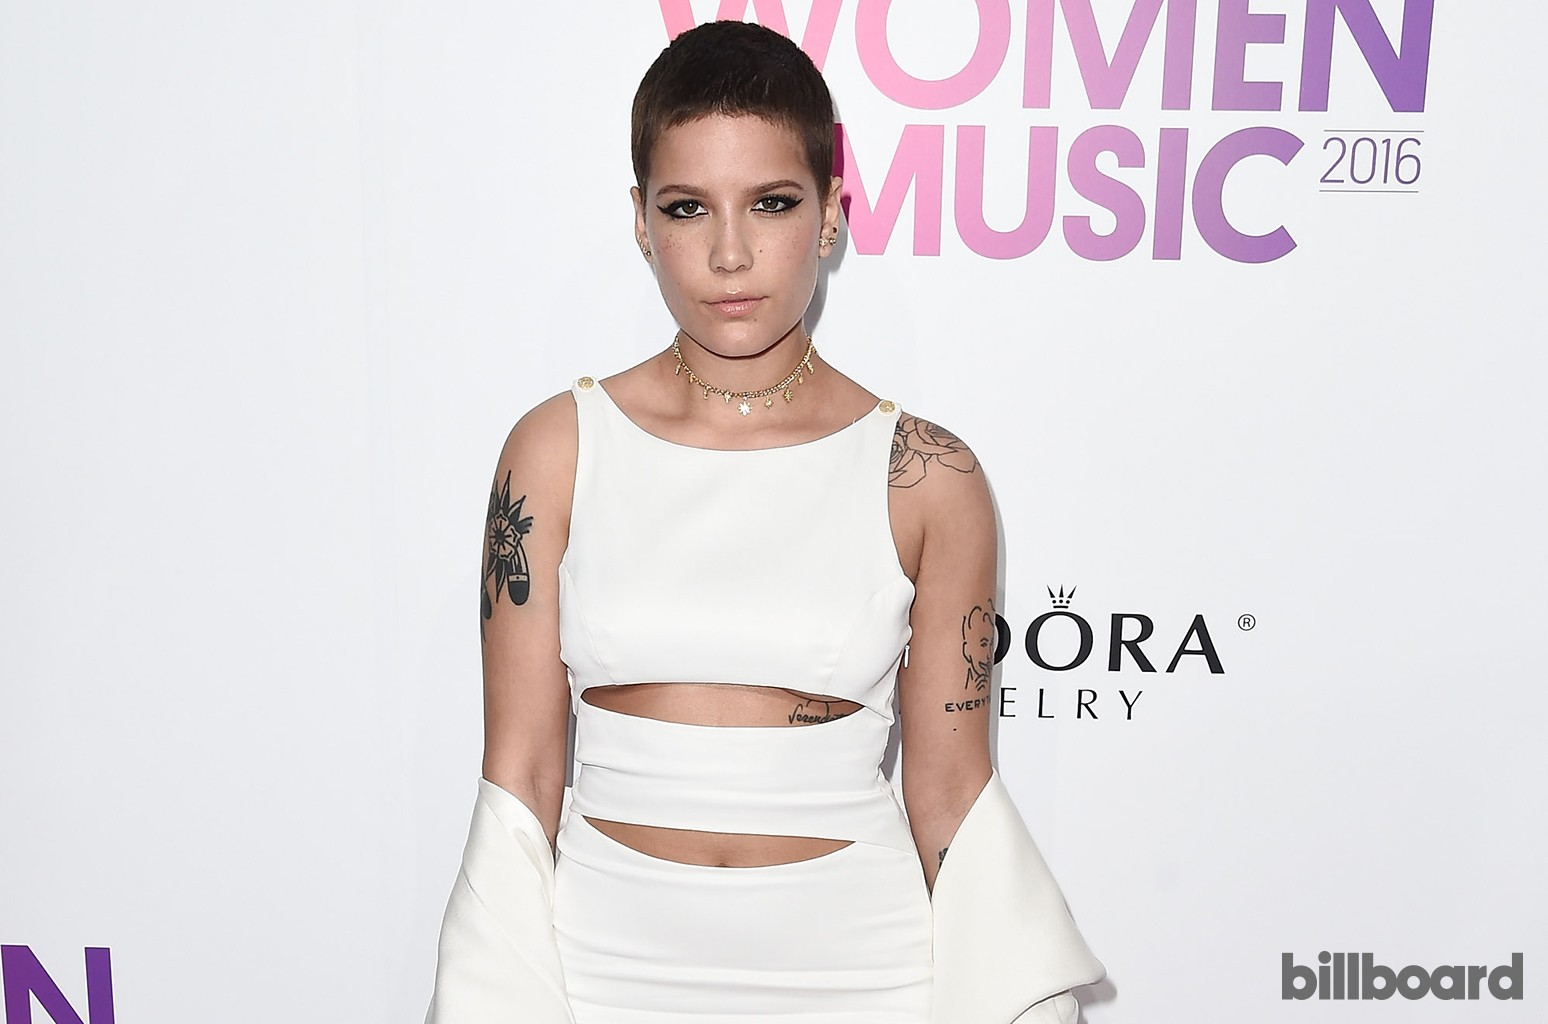 Halsey attends the Billboard Women in Music 2016 event on Dec. 9, 2016 in New York City.